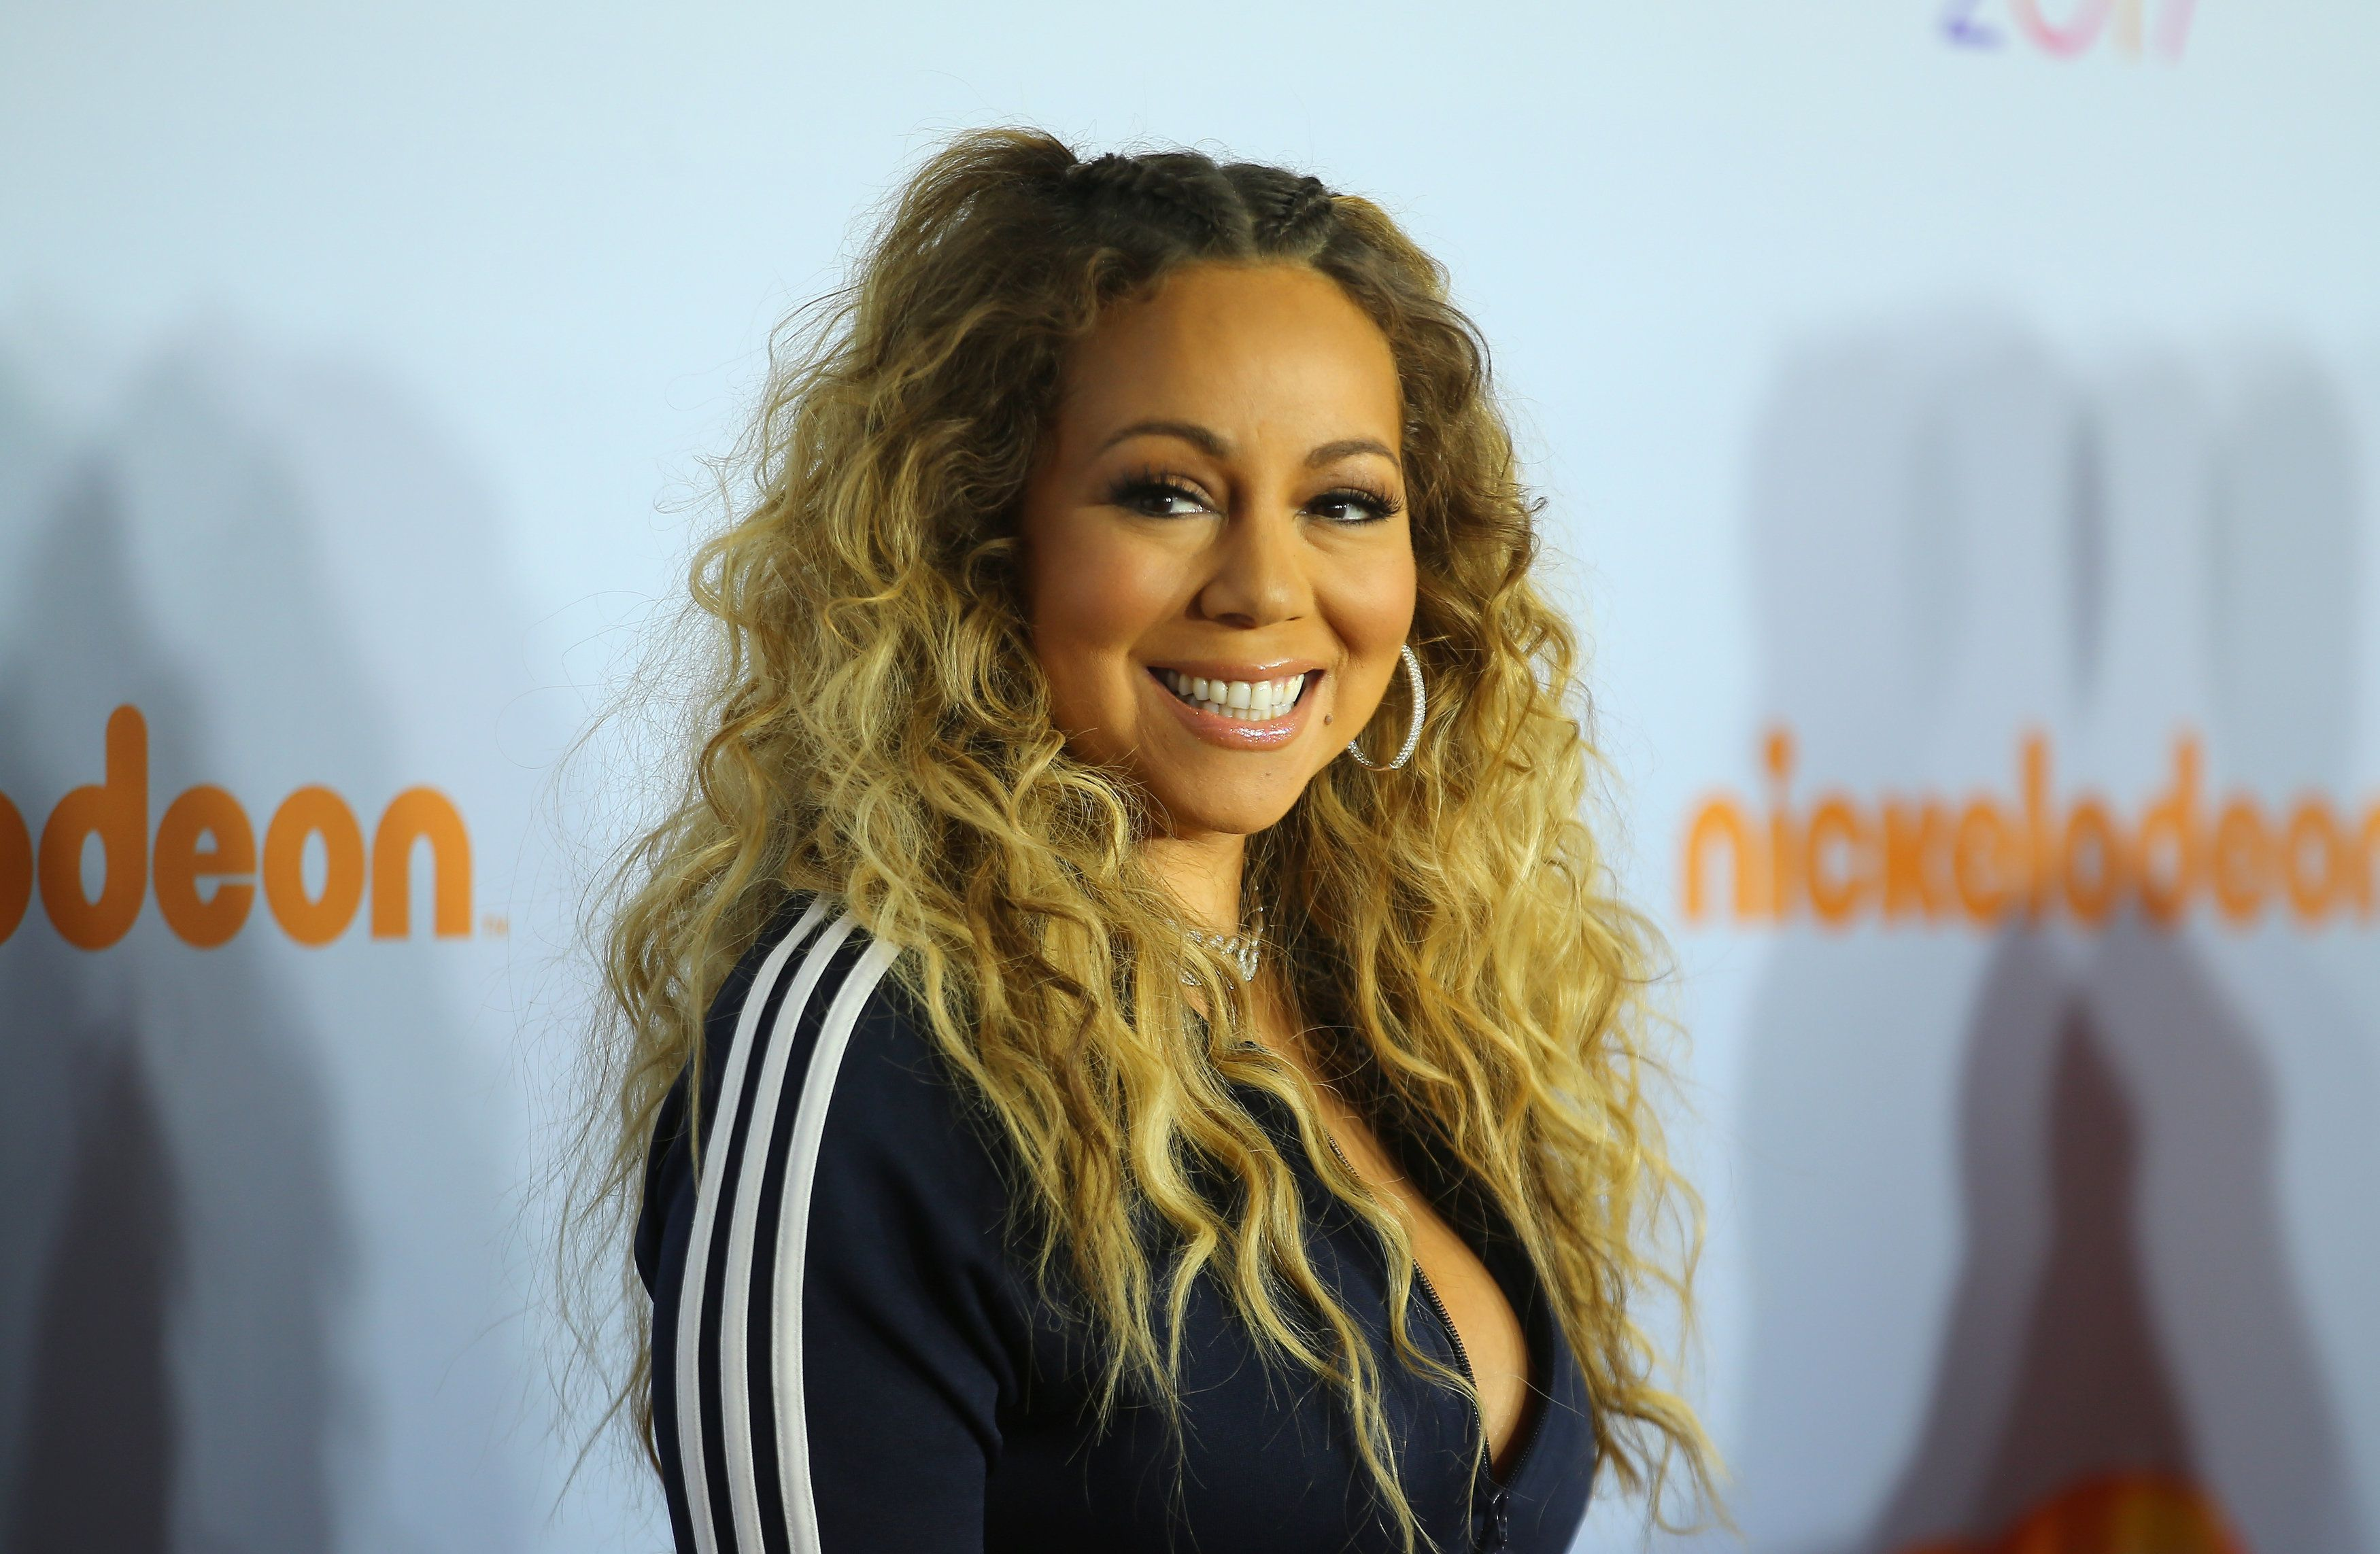 Mariah Carey 'Uplifted' By Public Support Since Sharing Bipolar Disorder